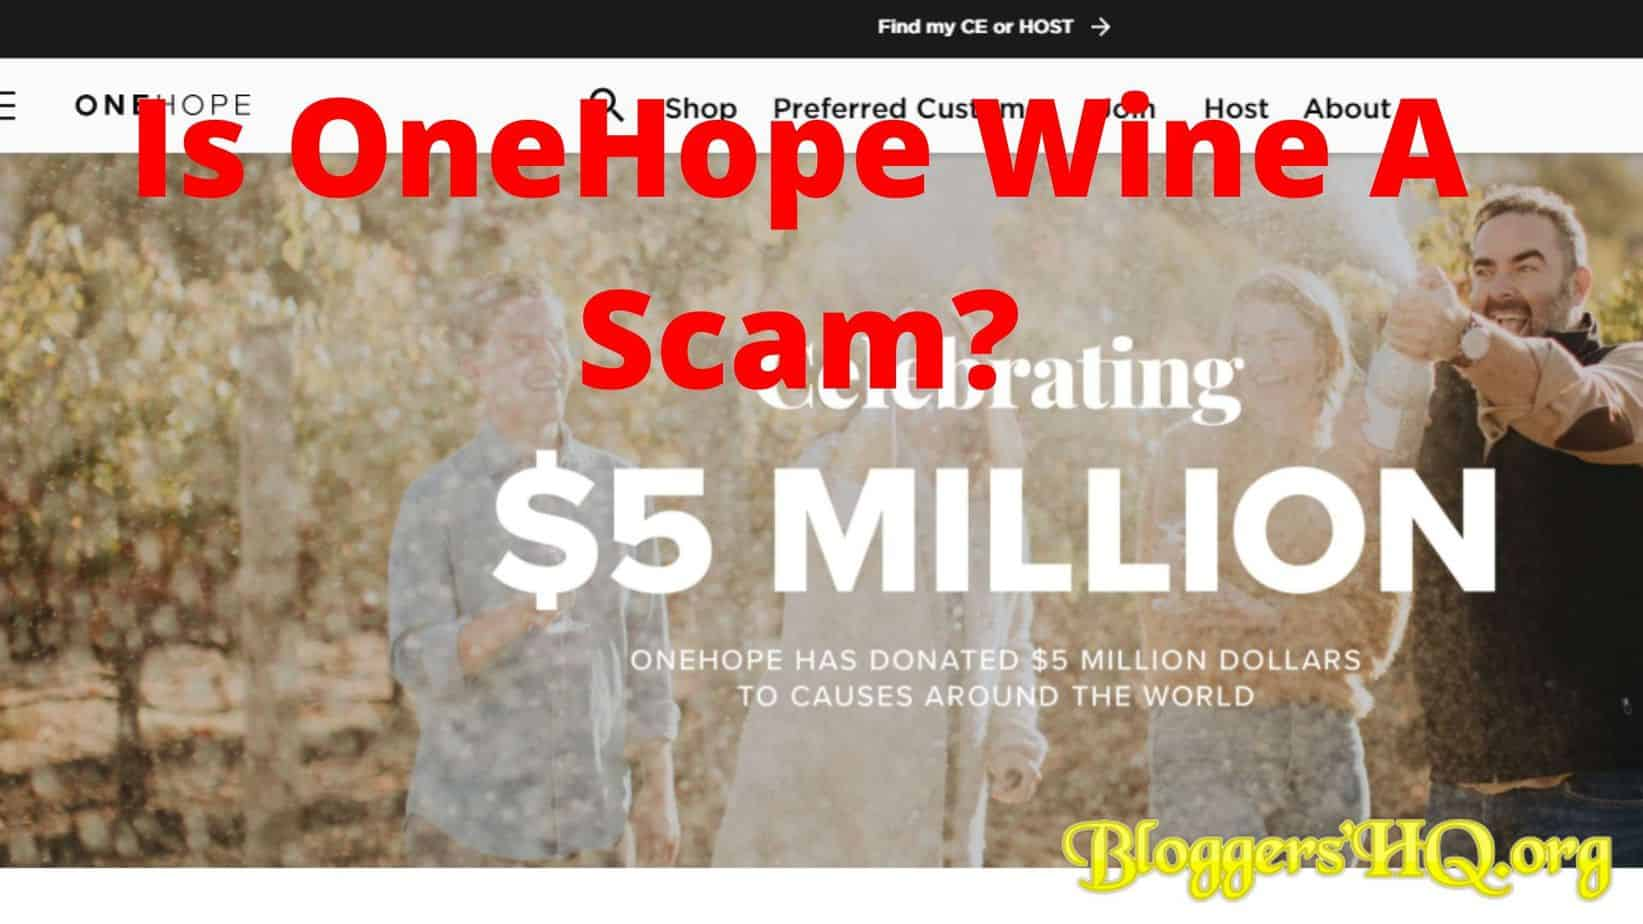 Is OneHope Wine A Scam